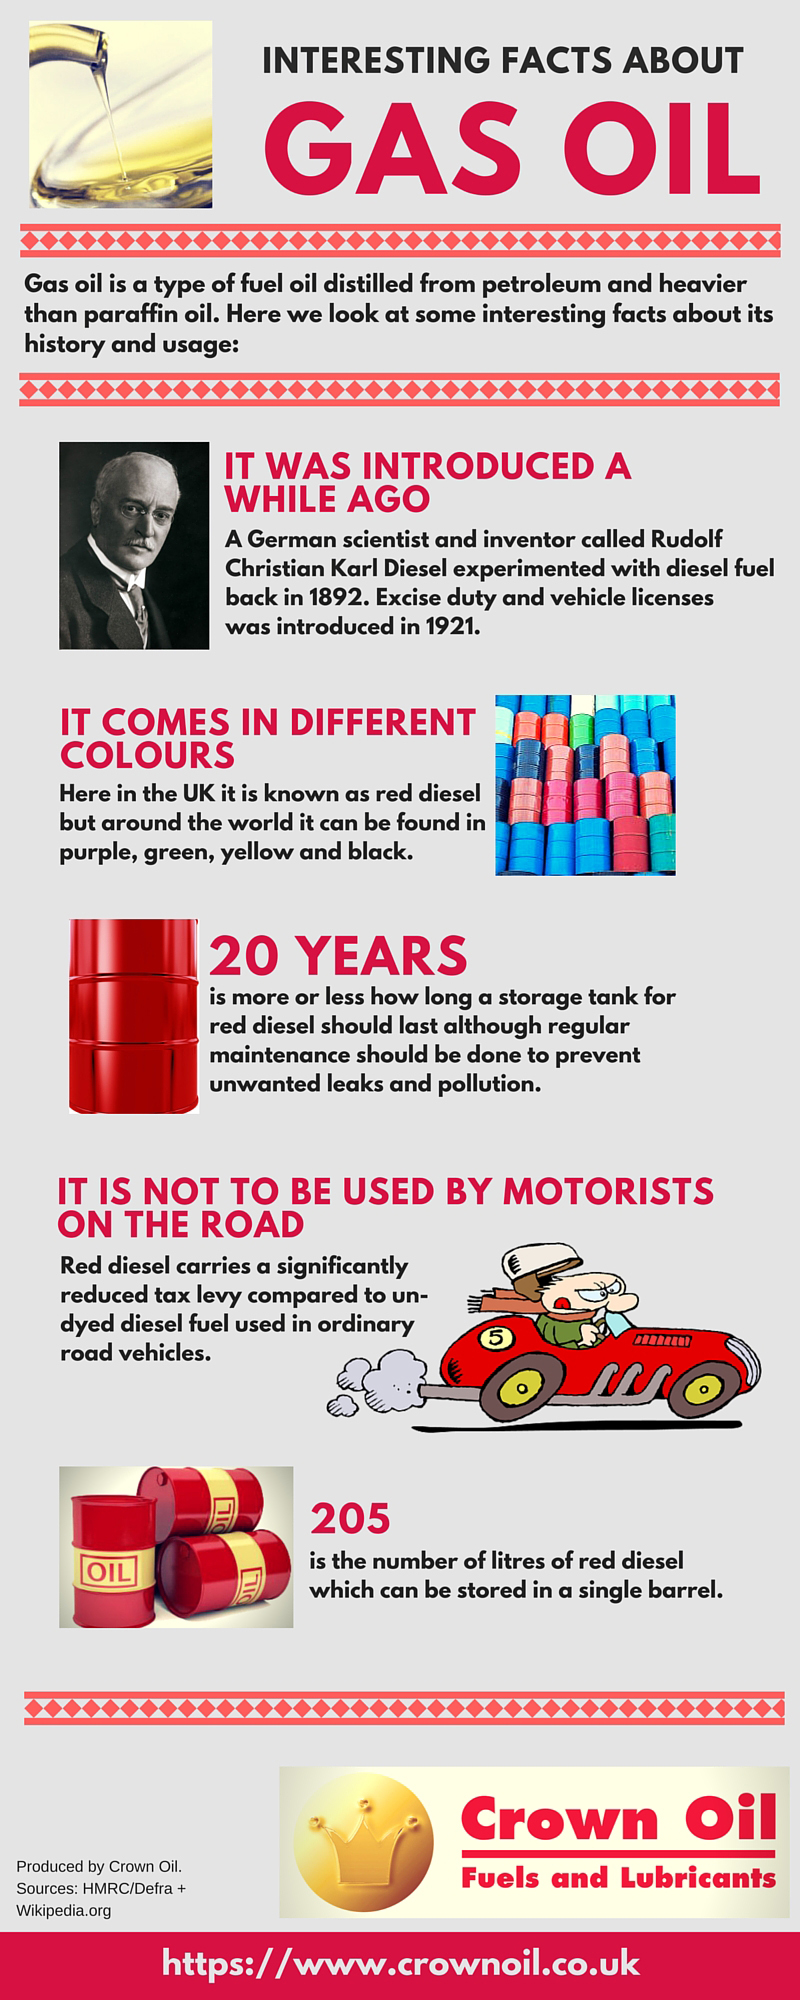 Interesting Facts About Gas Oil Infographic